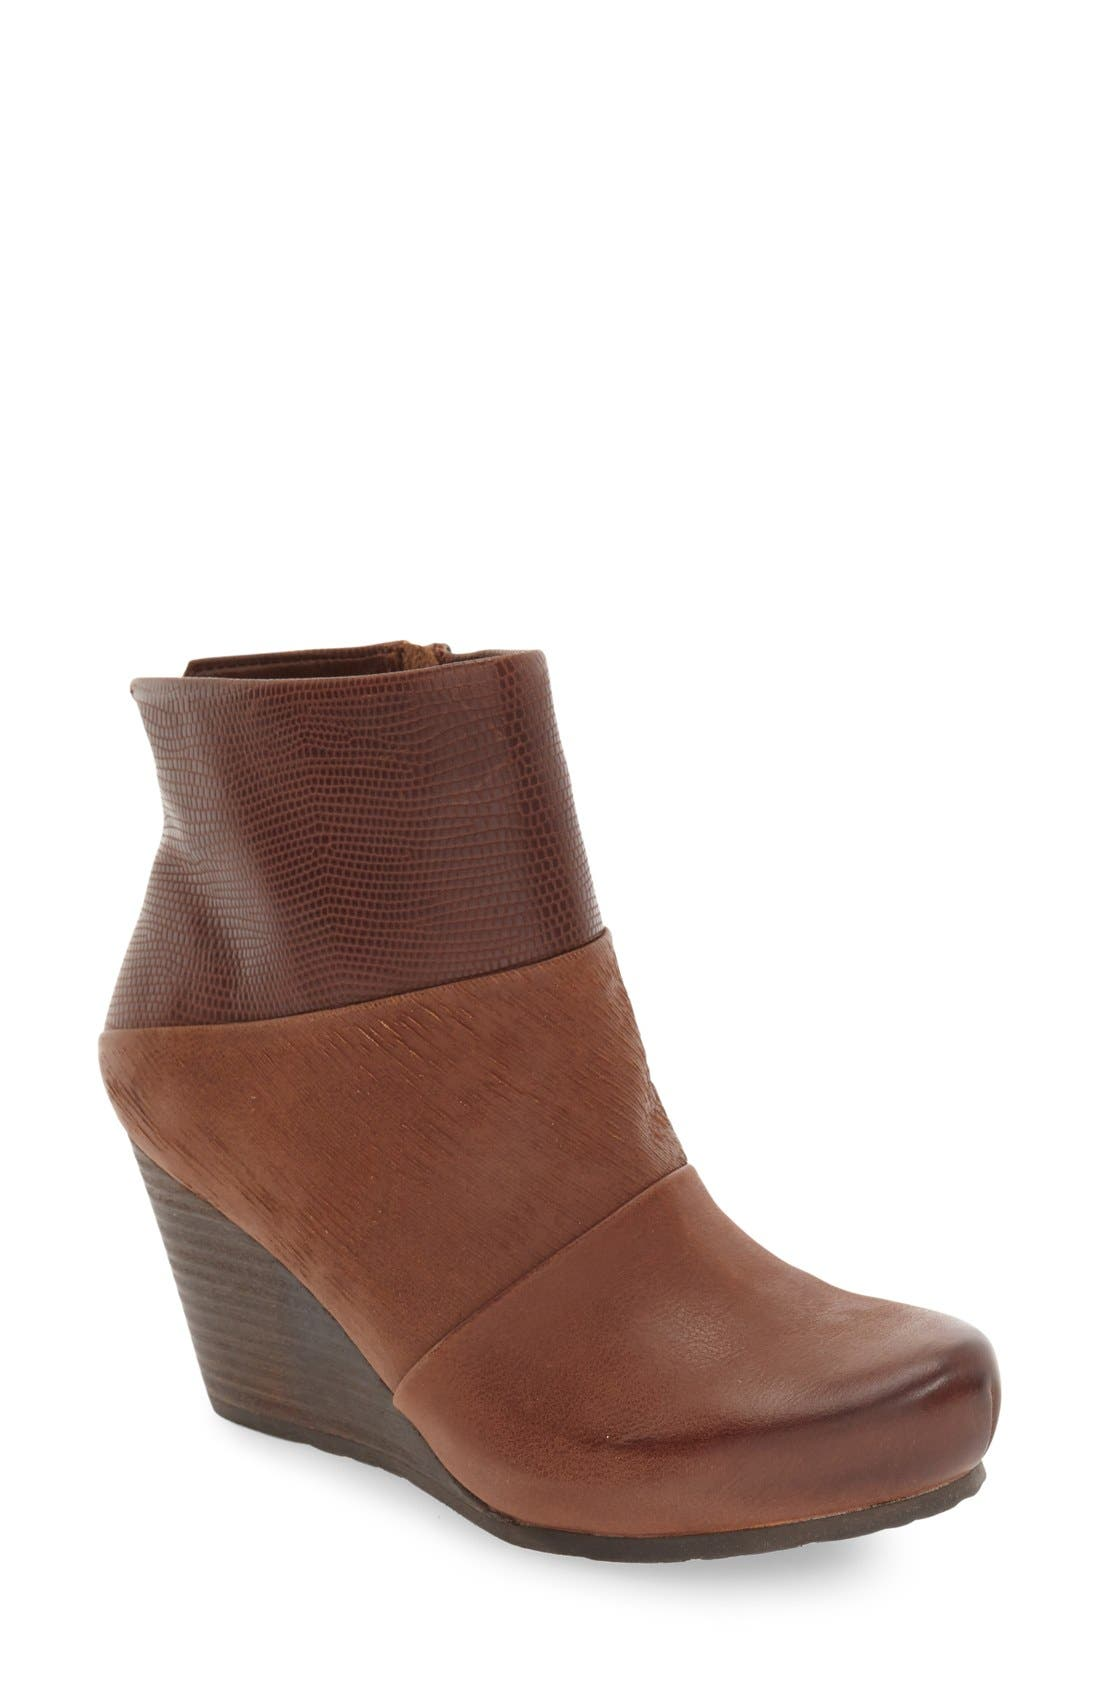 'Dharma' Wedge Bootie,                         Main,                         color, Acorn Leather